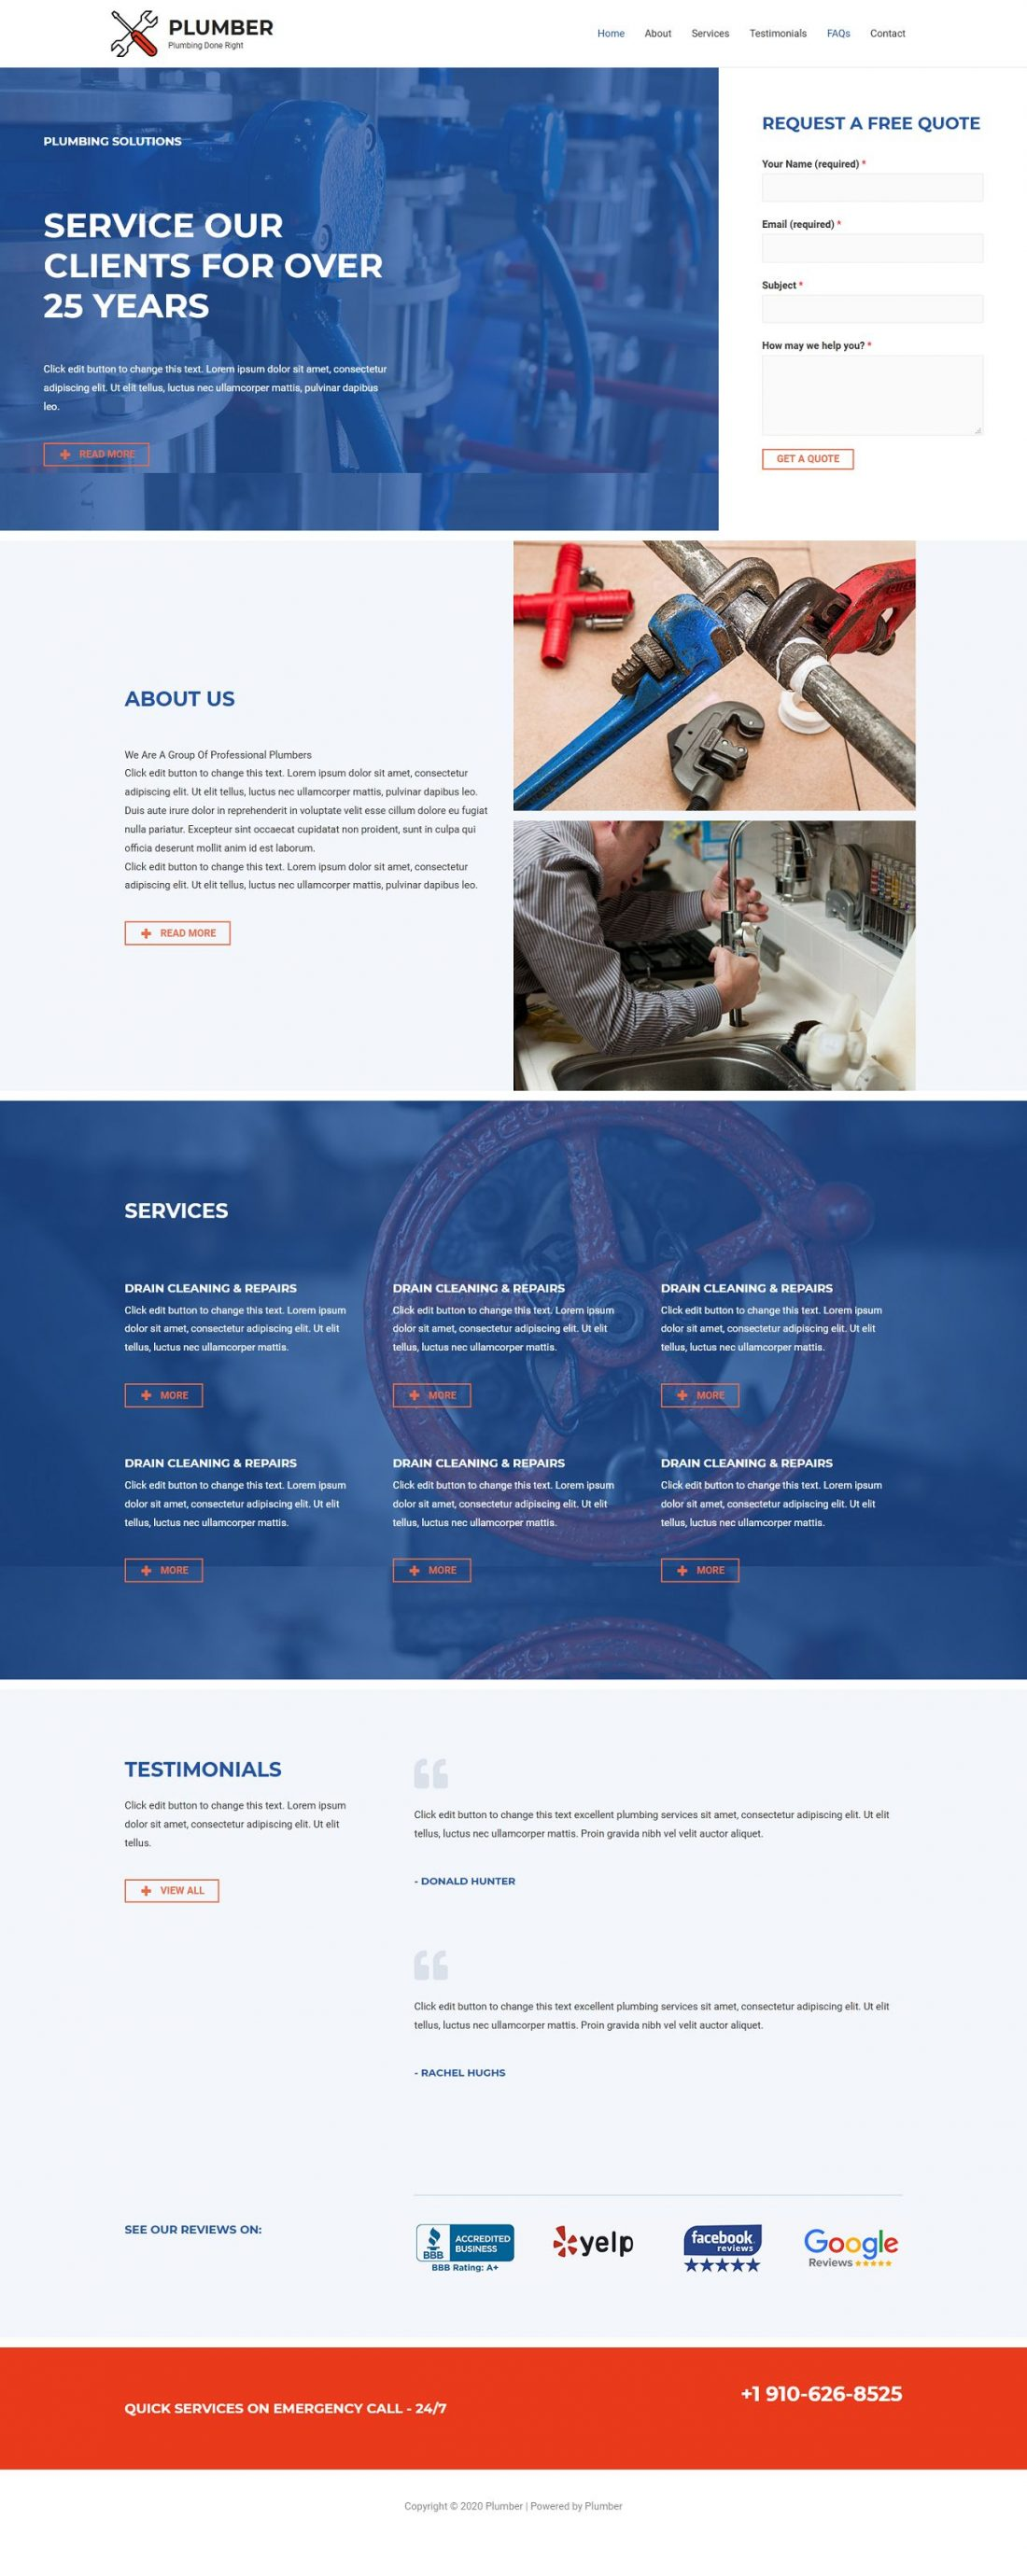 Fagowi.com Website Design Templates For Plumber - Home Page Image